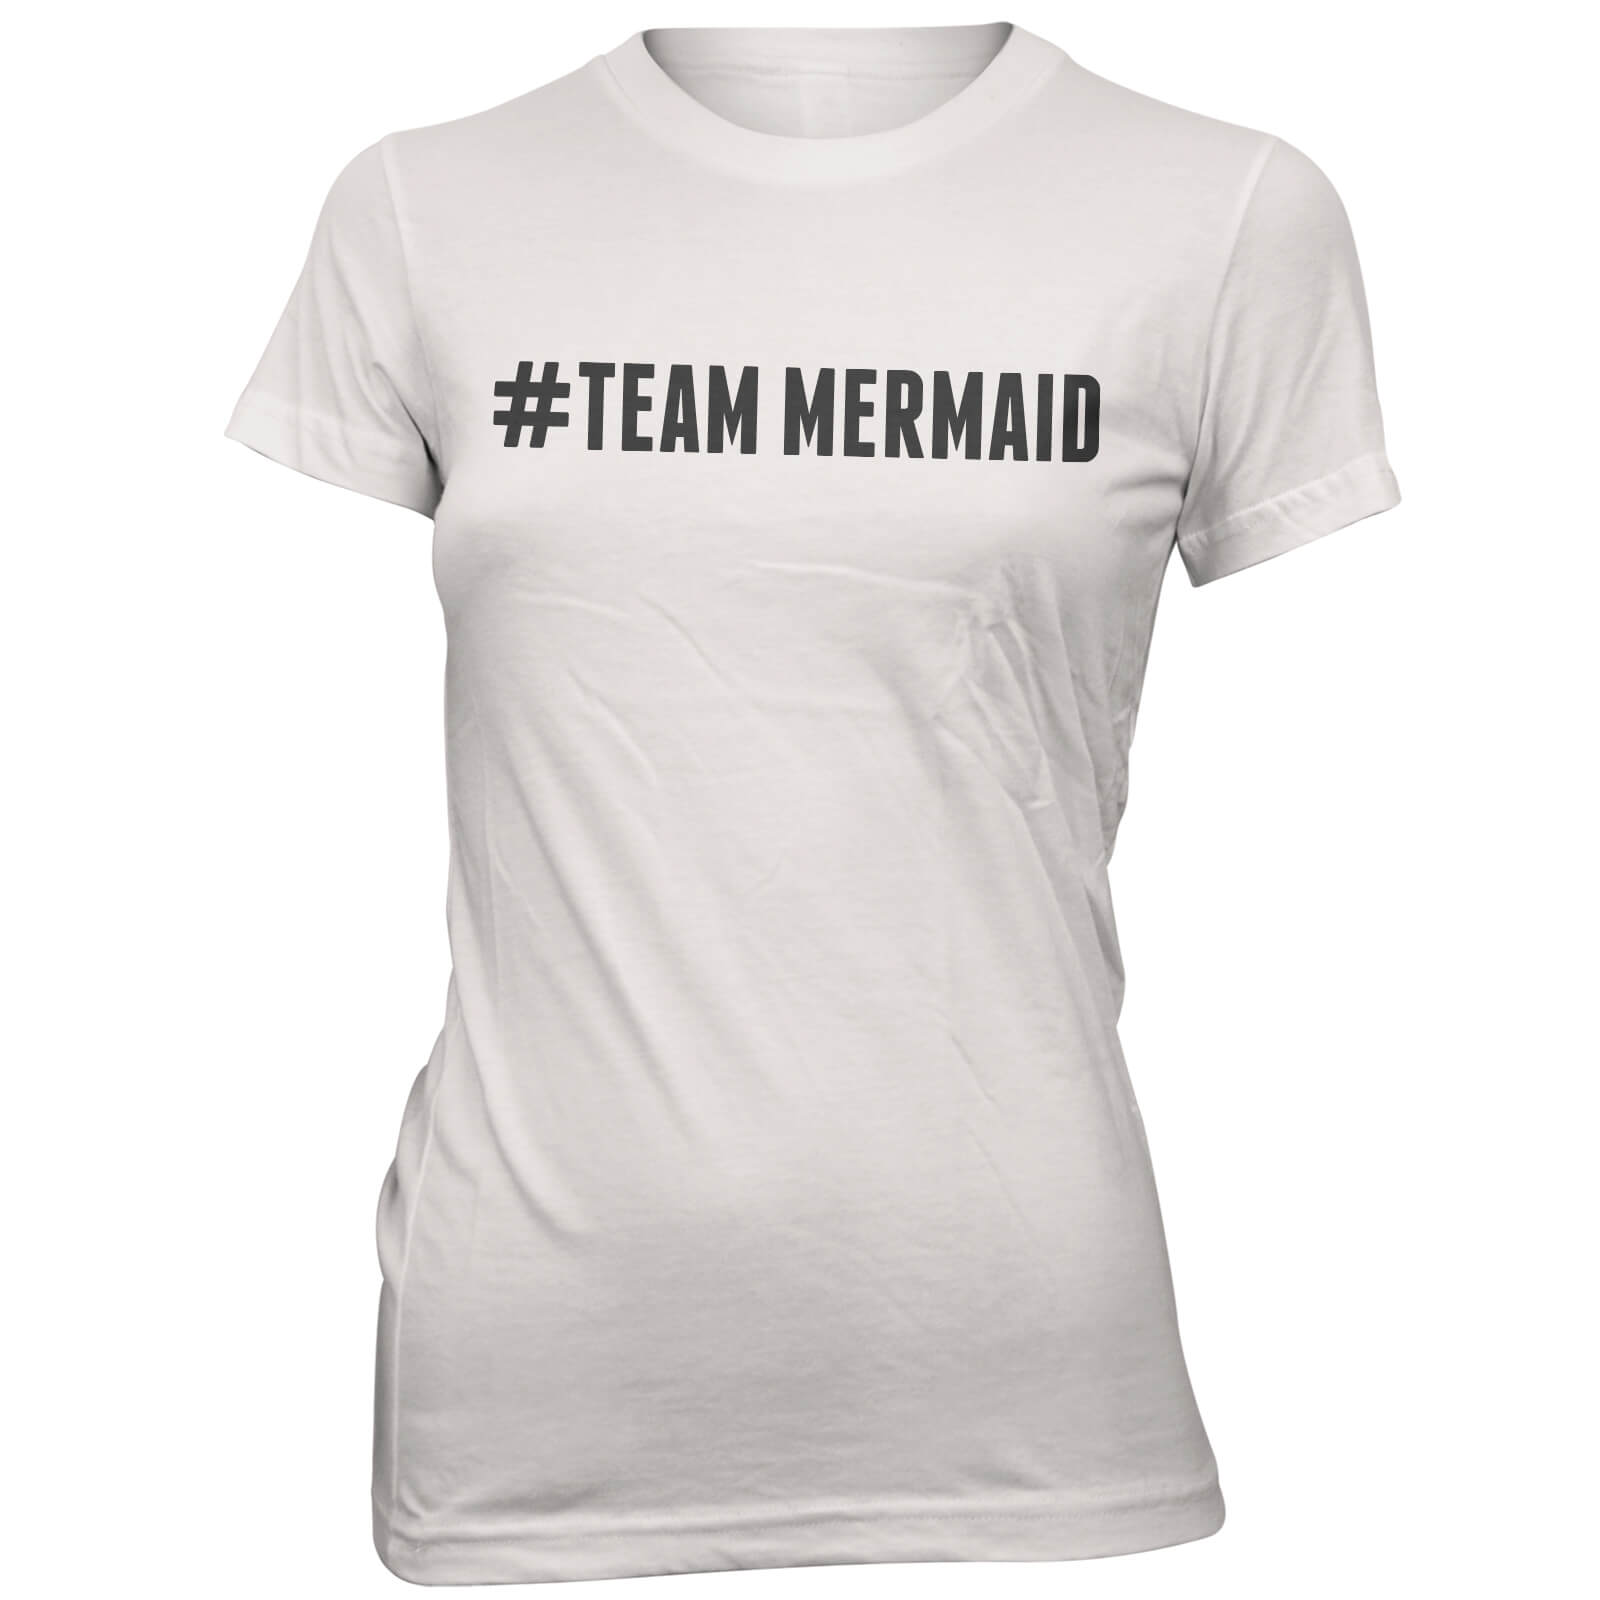 Hashtag Team Mermaid Women